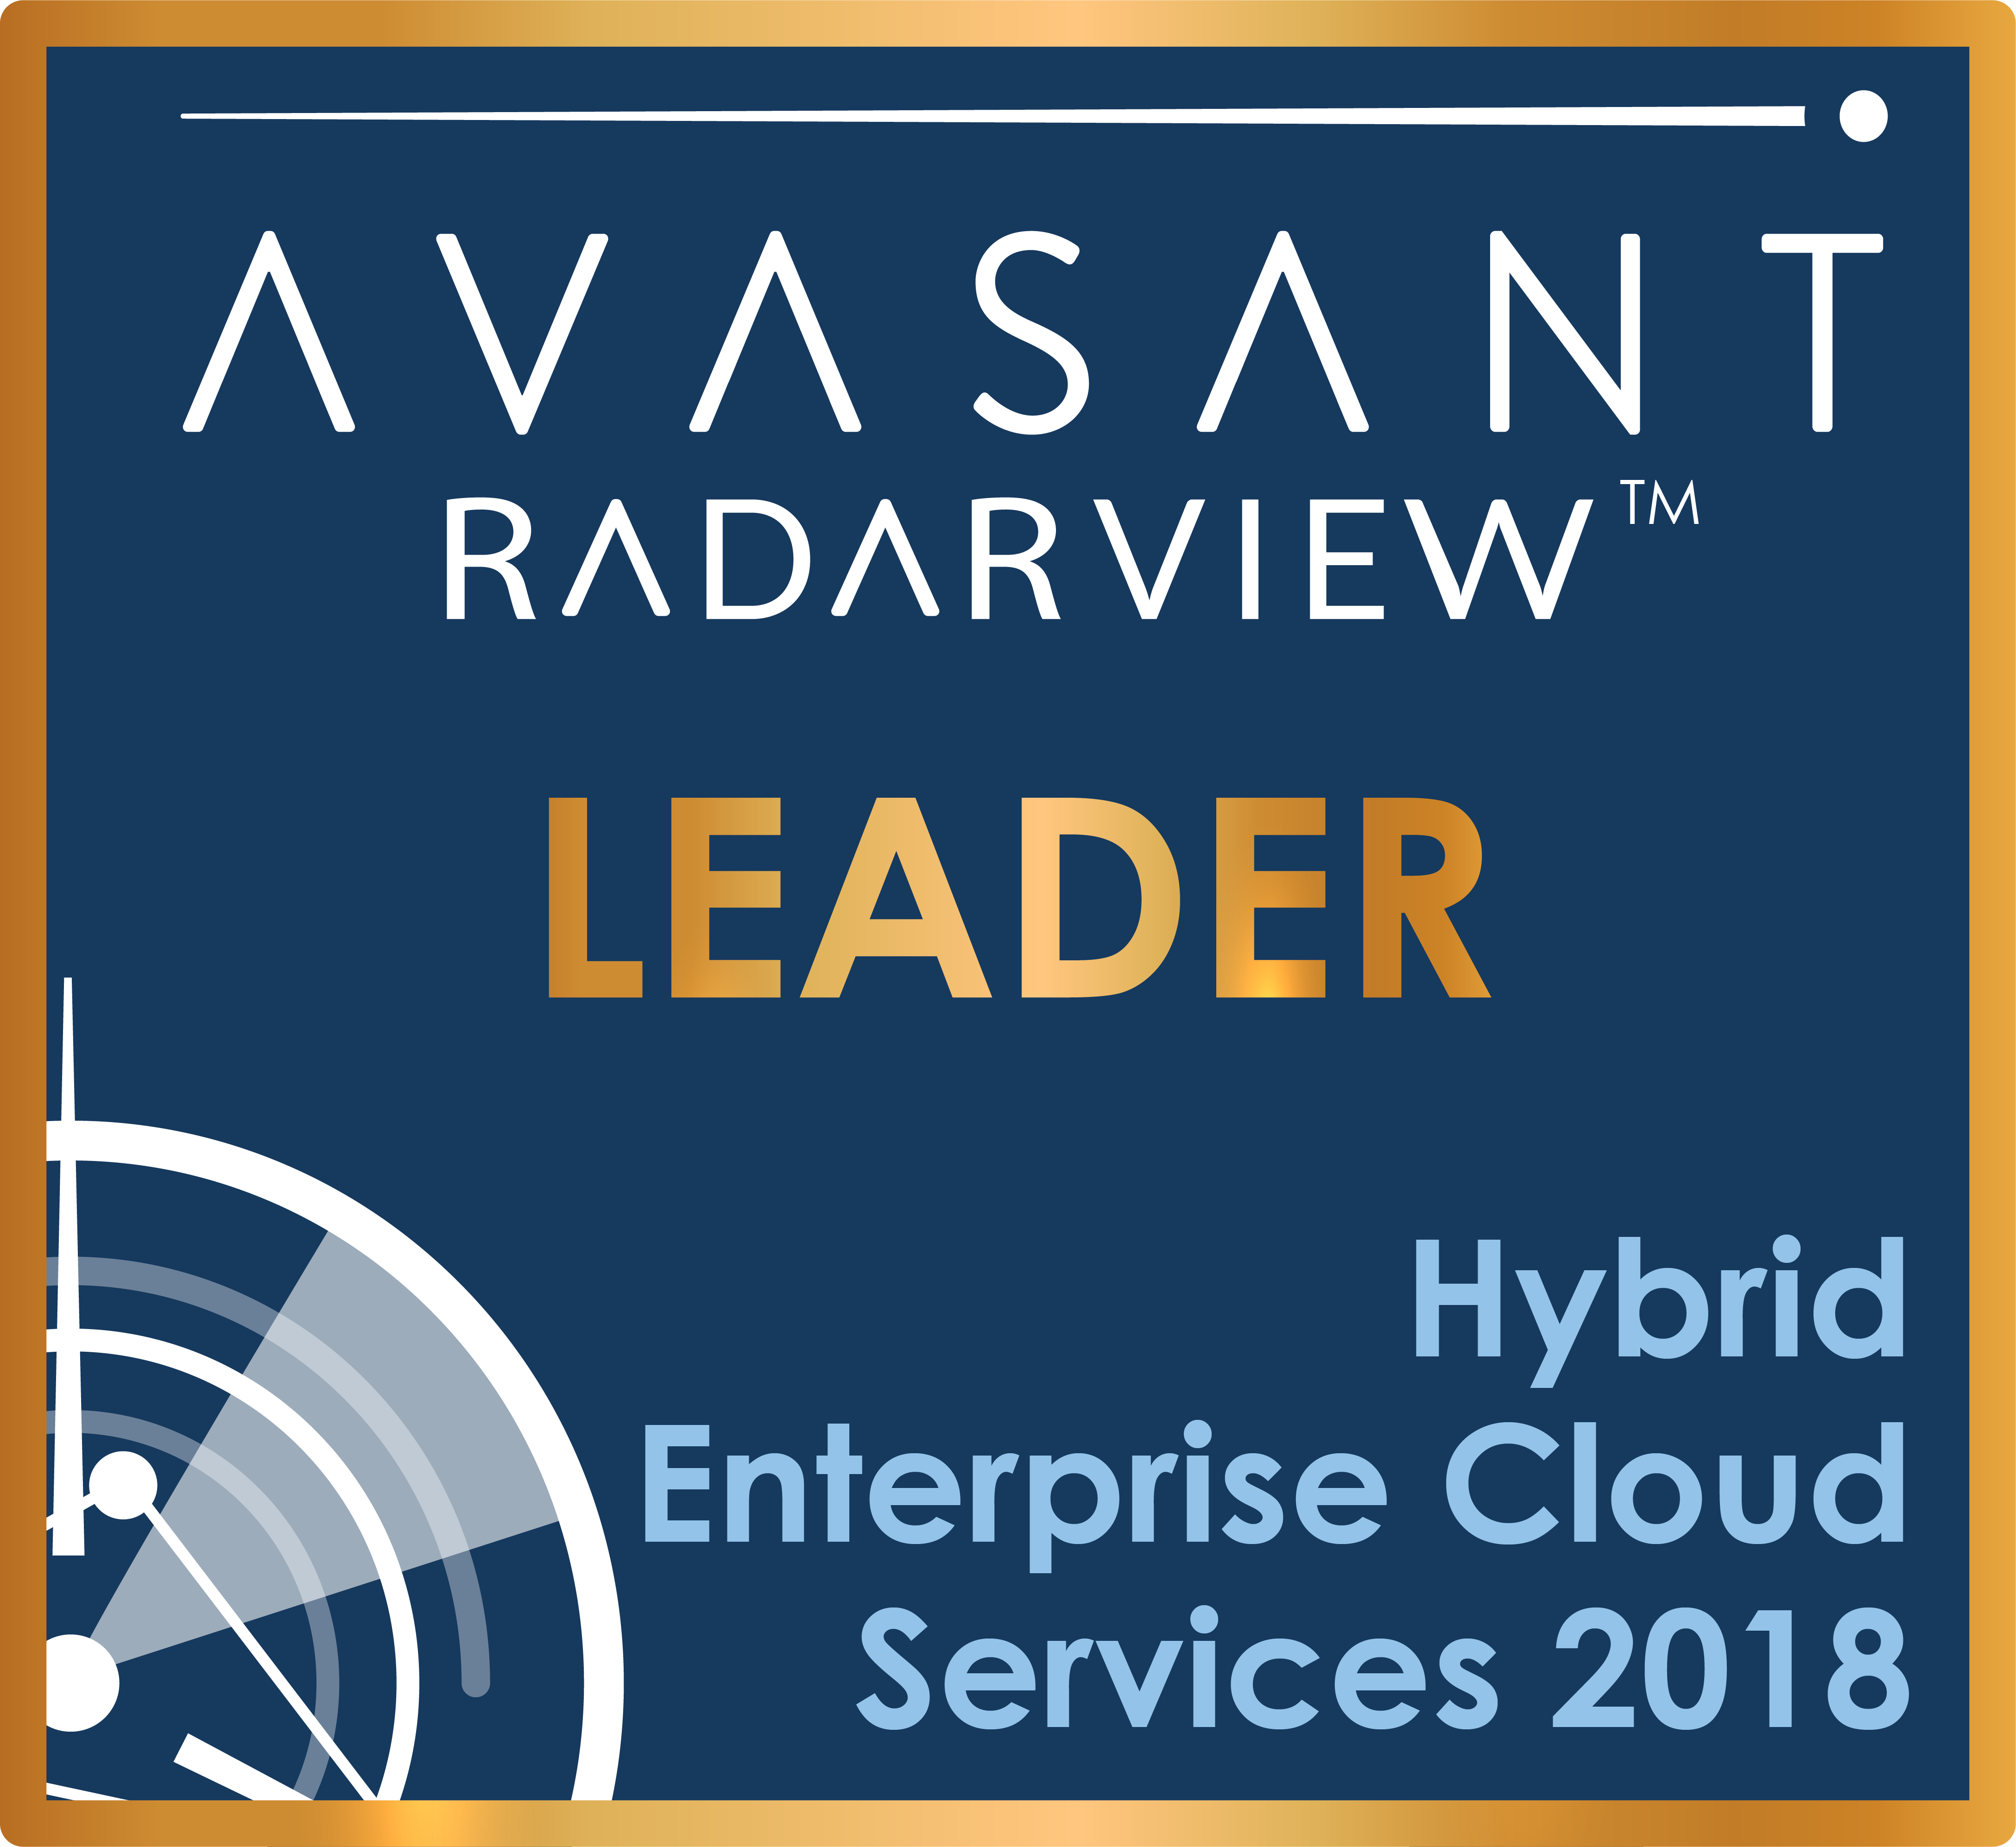 Square Leader Cloud - Avasant Research Bytes